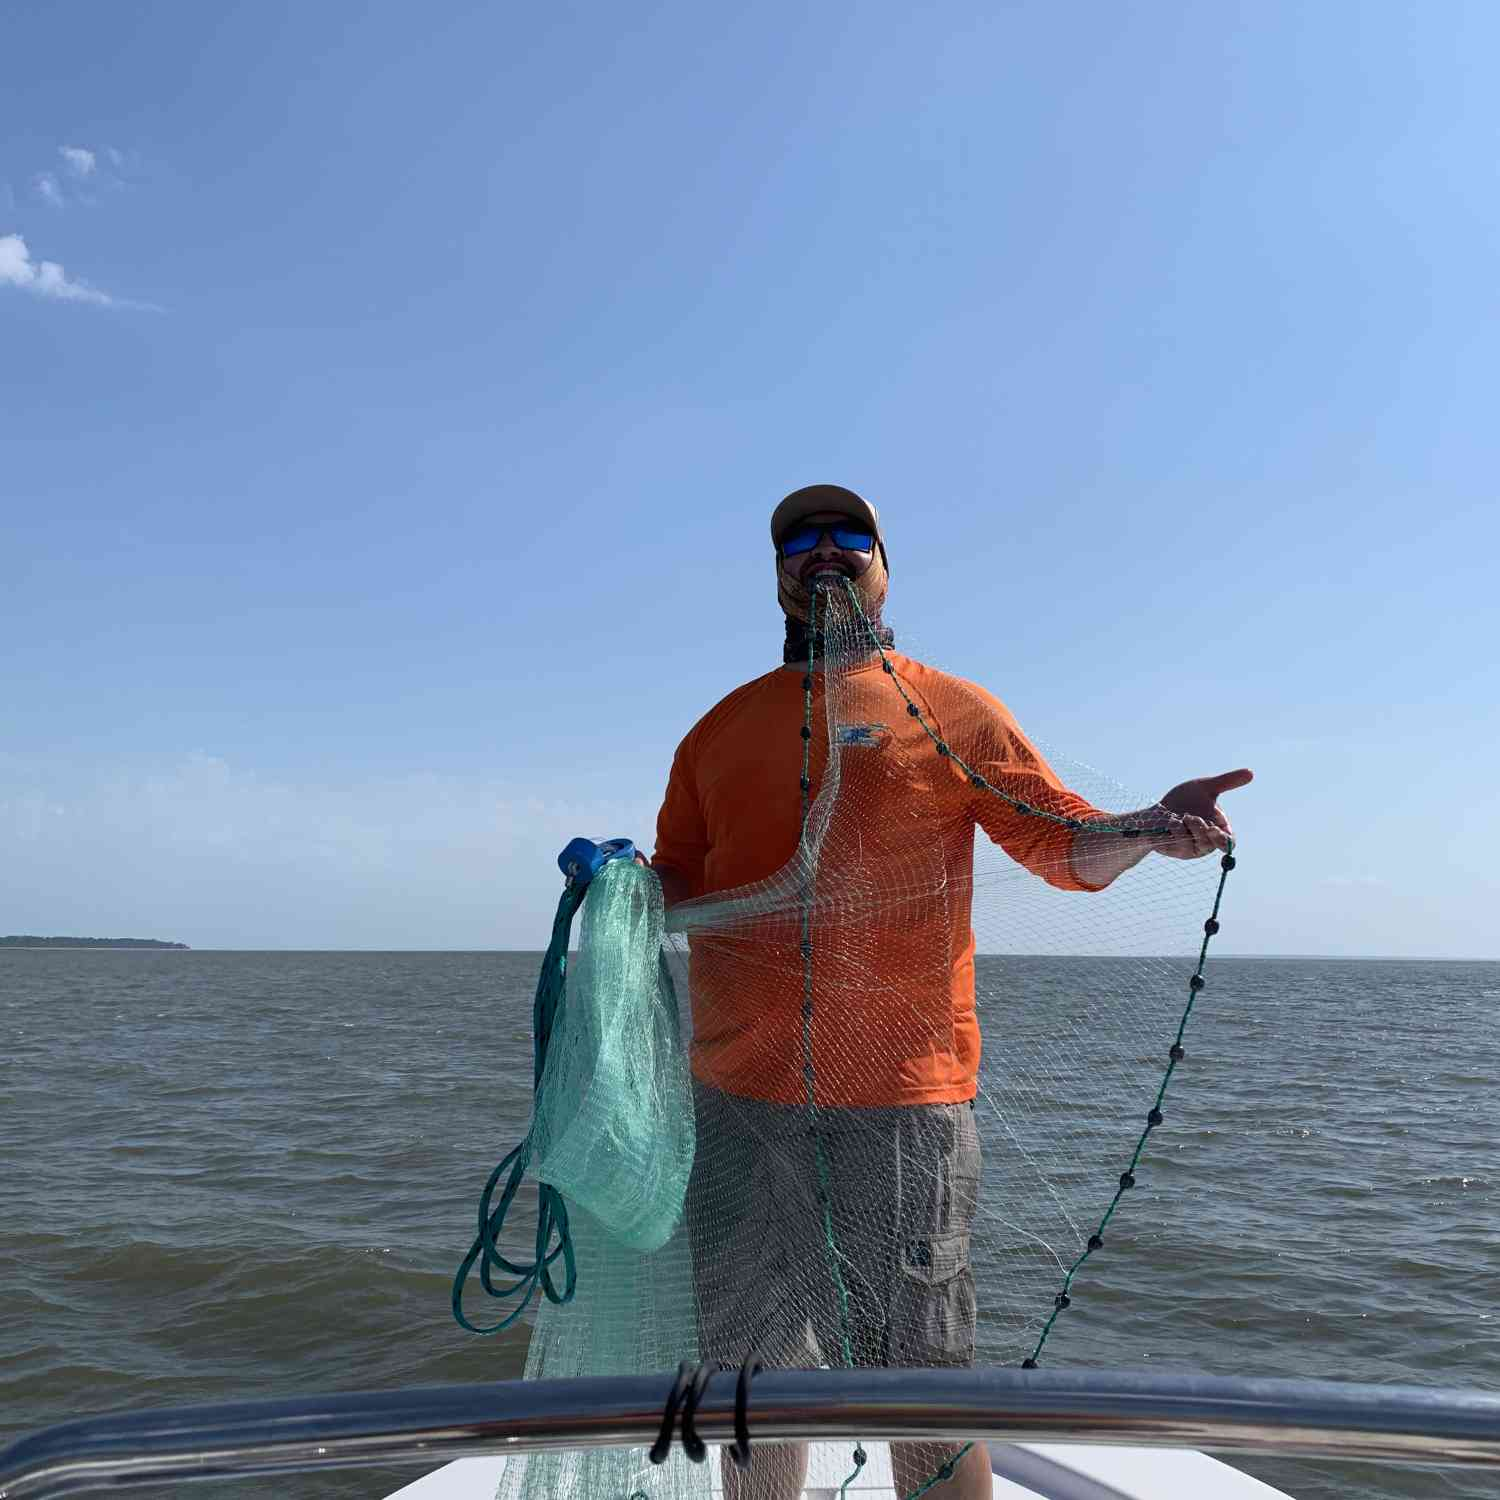 Title: Shrimpin' Ain't Easy - On board their Sportsman Masters 207 Bay Boat - Location: Edisto, SC. Participating in the Photo Contest #SportsmanMay2020